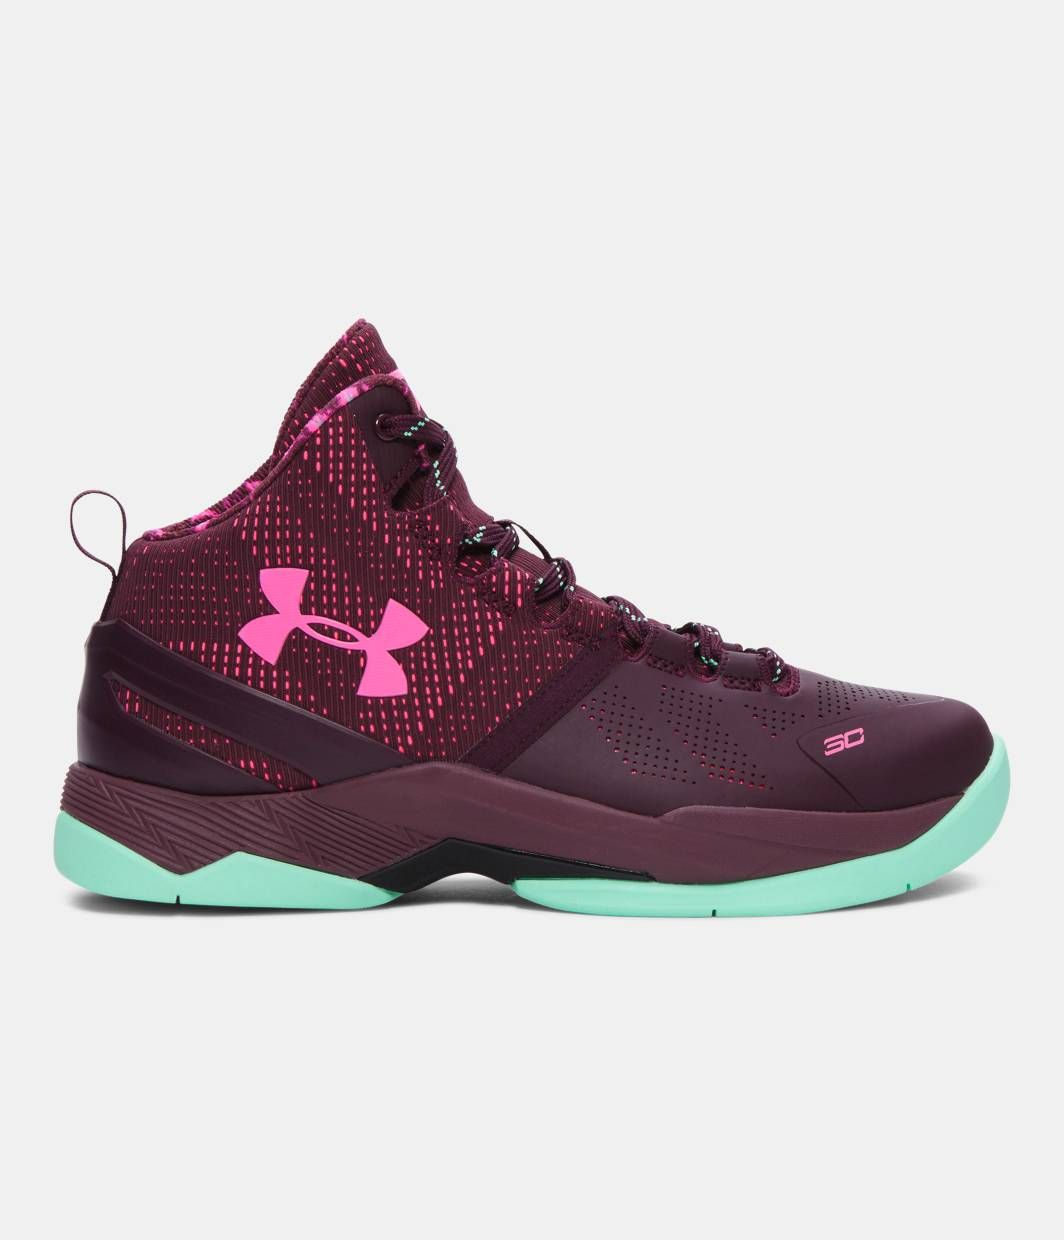 Grade School UA Curry Two Basketball Shoes   Under Armour US